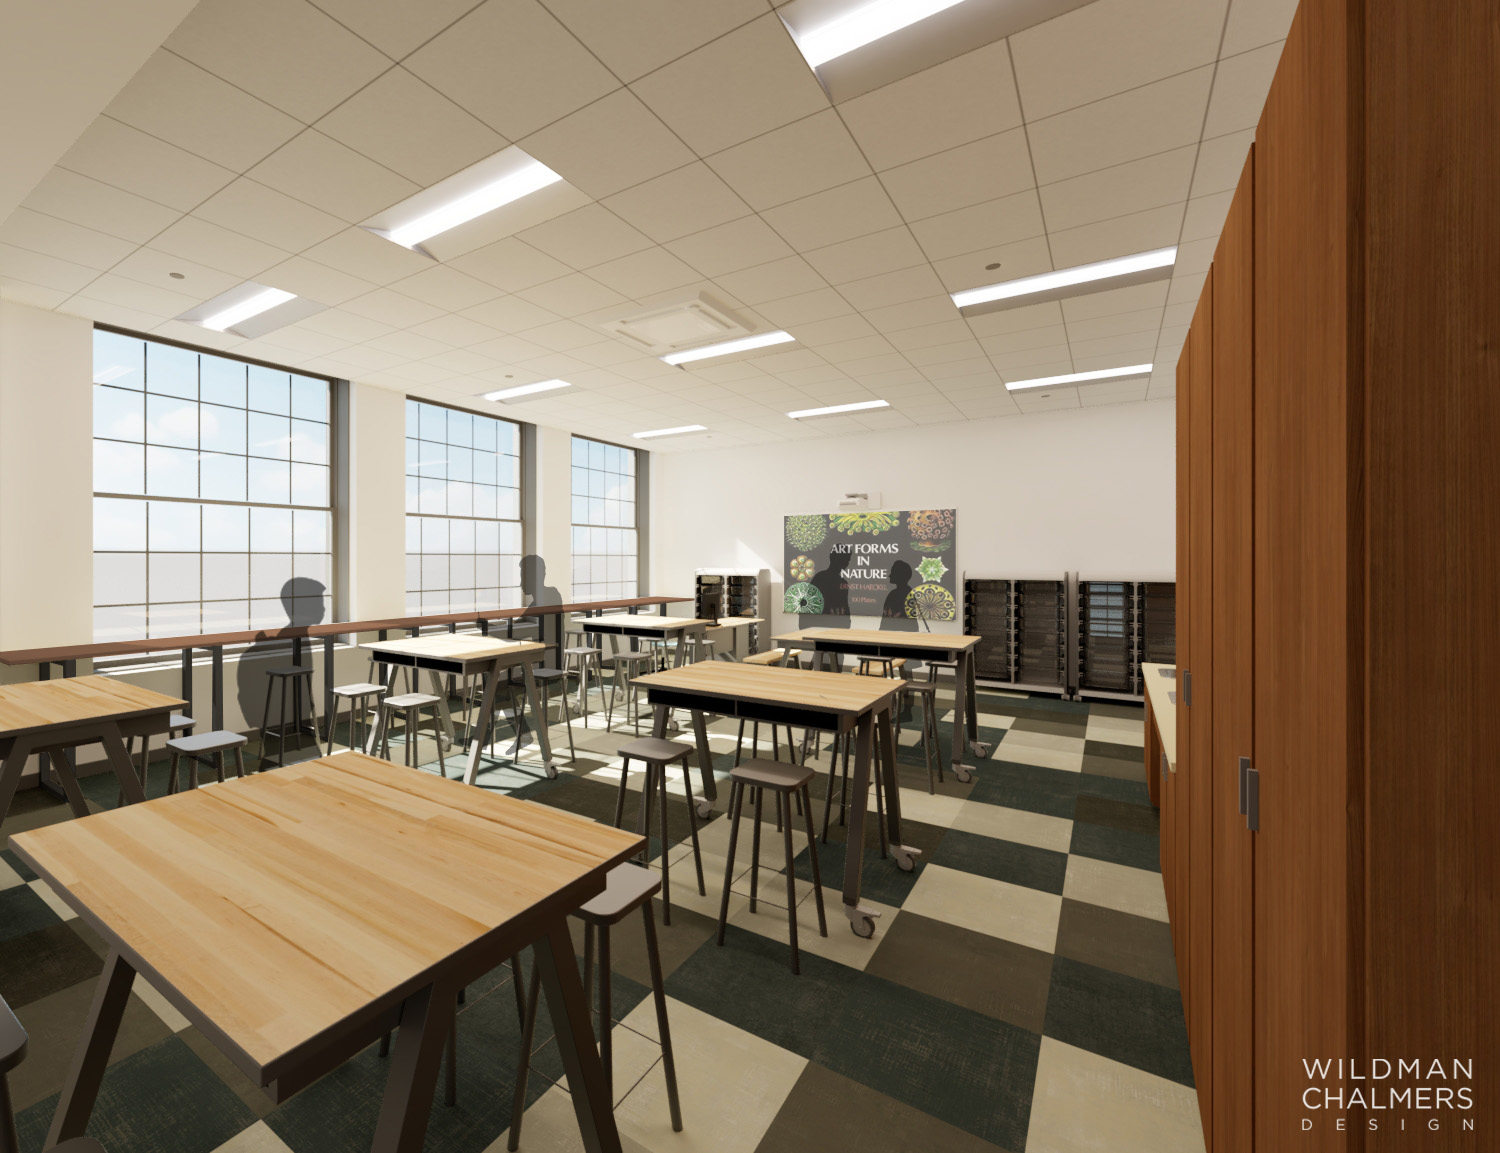 Thinking Lab Rendering of the Environmental Charter School Pittsburgh